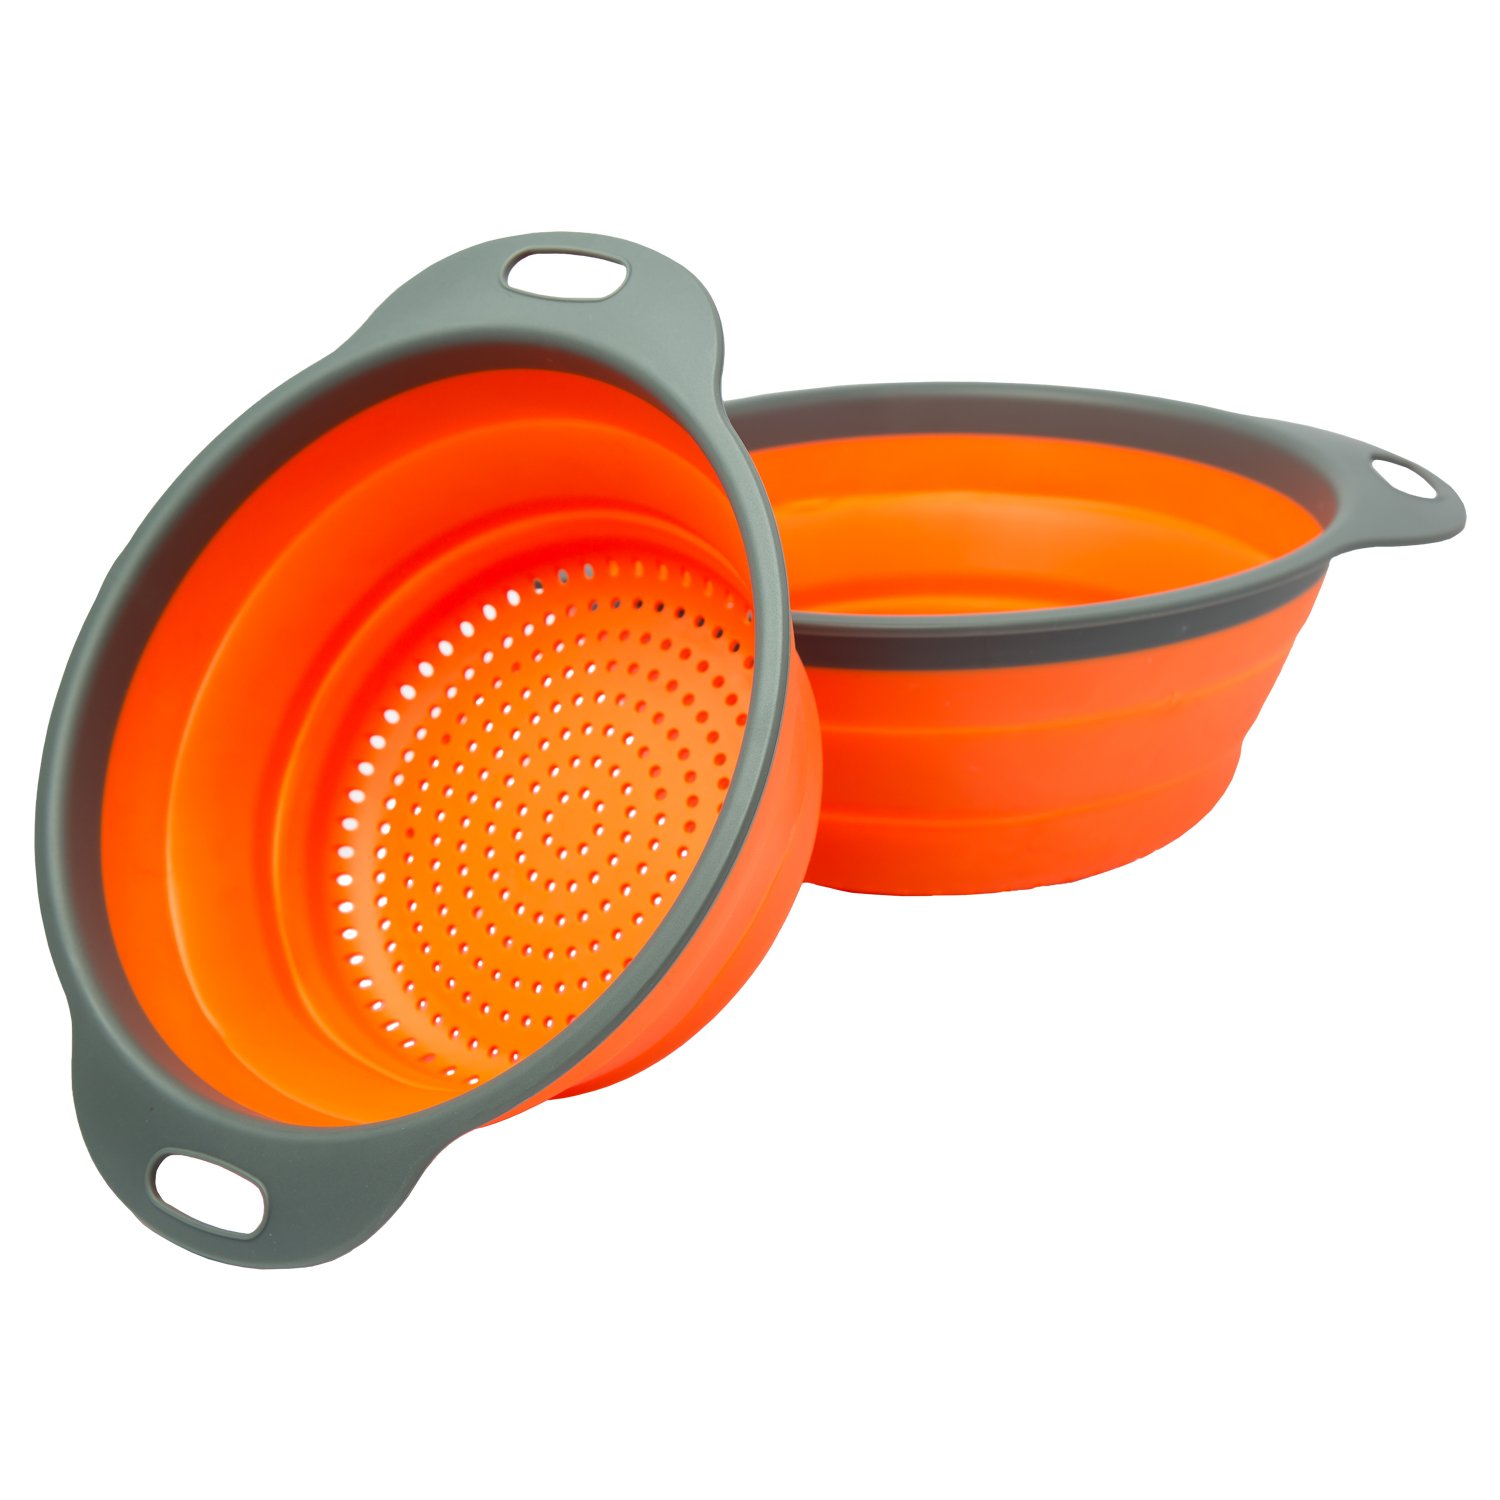 "Colander Set - 2 Collapsible Colanders (Strainers) Set By Comfify - Includes 2 Folding Strainers. Sizes 8"" - 2 Quart, and 9.5"" - 3 quart. (Orange and Grey)"